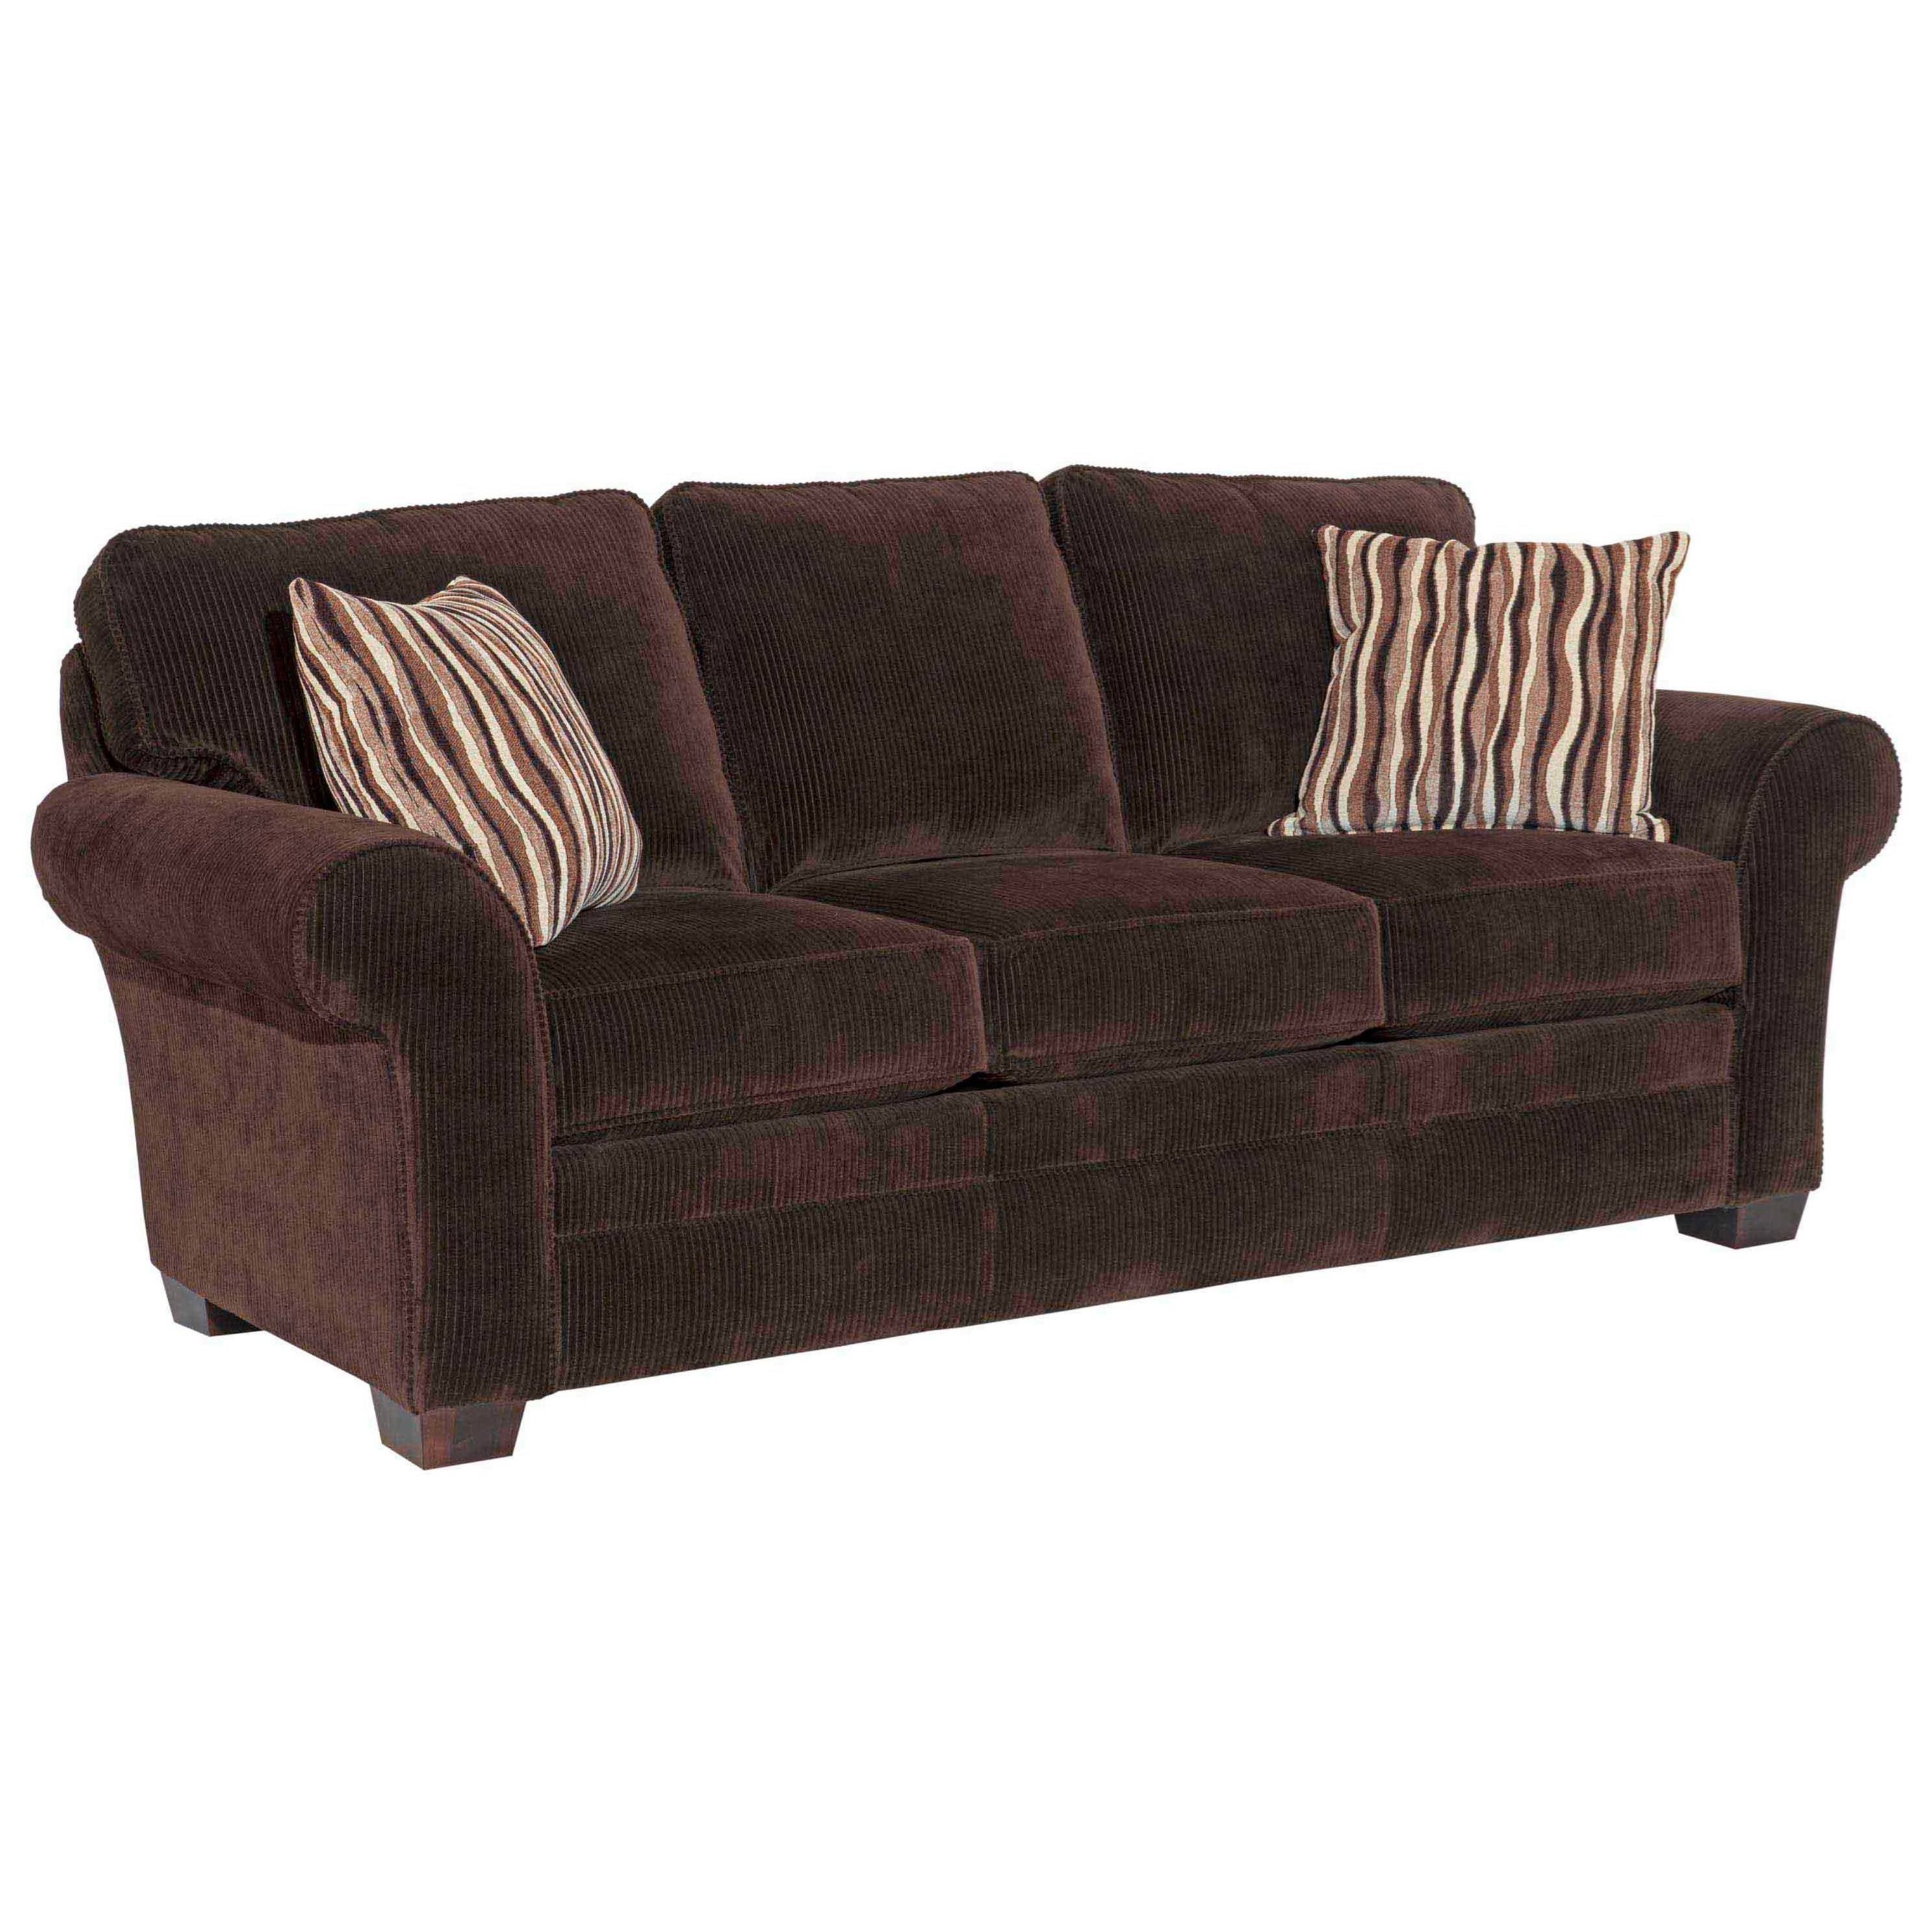 Broyhill Furniture Zachary Upholstered Sofa - Item Number: 7902-3-7973-87